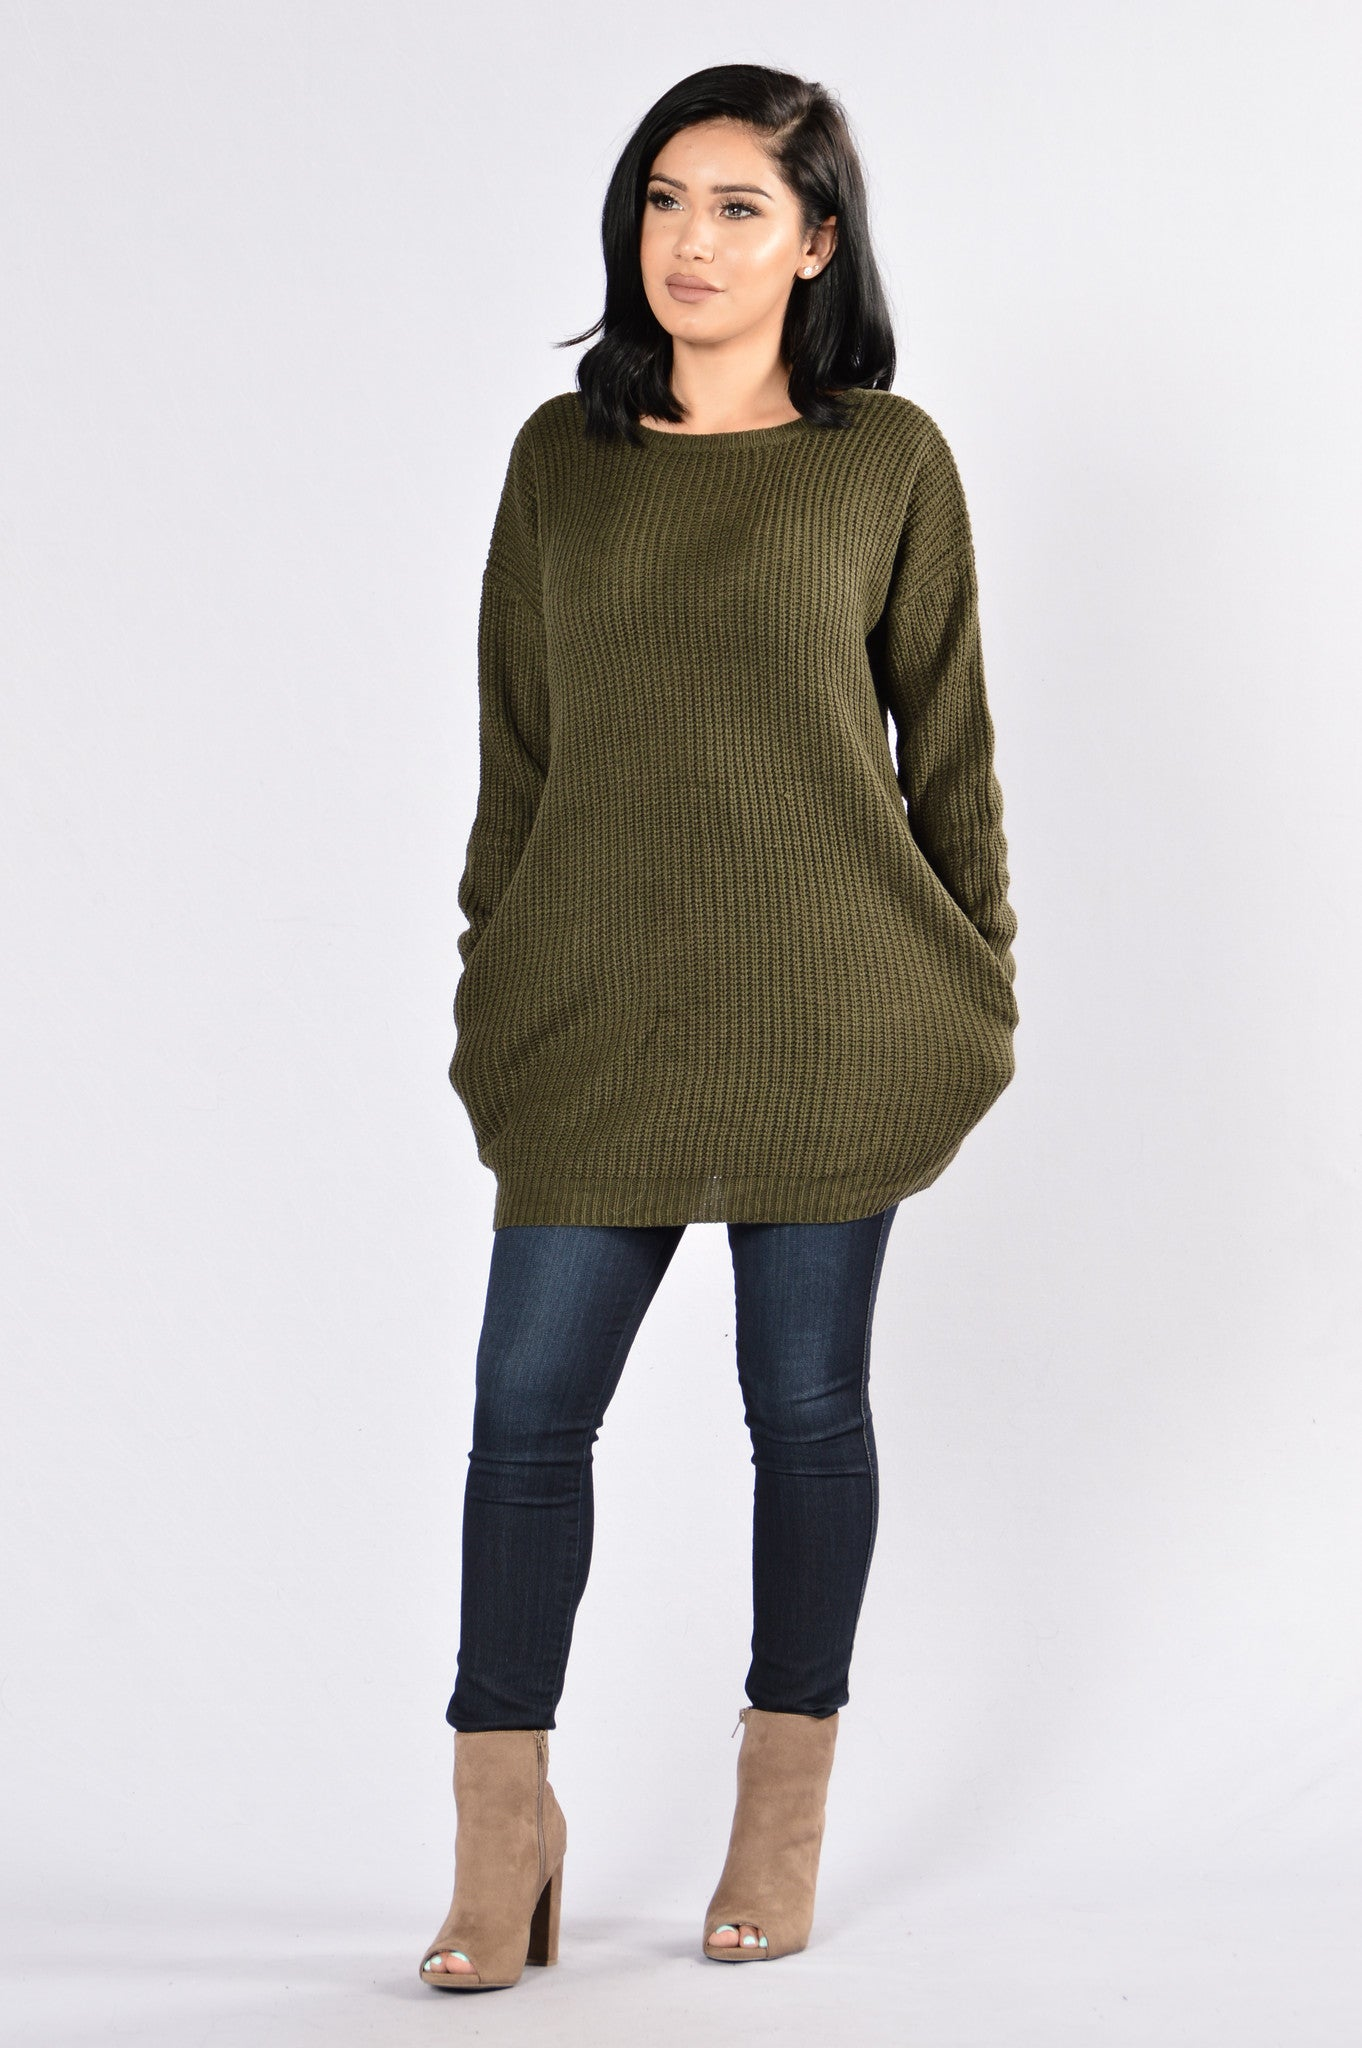 hot cardigans sexy secretary sweater olive